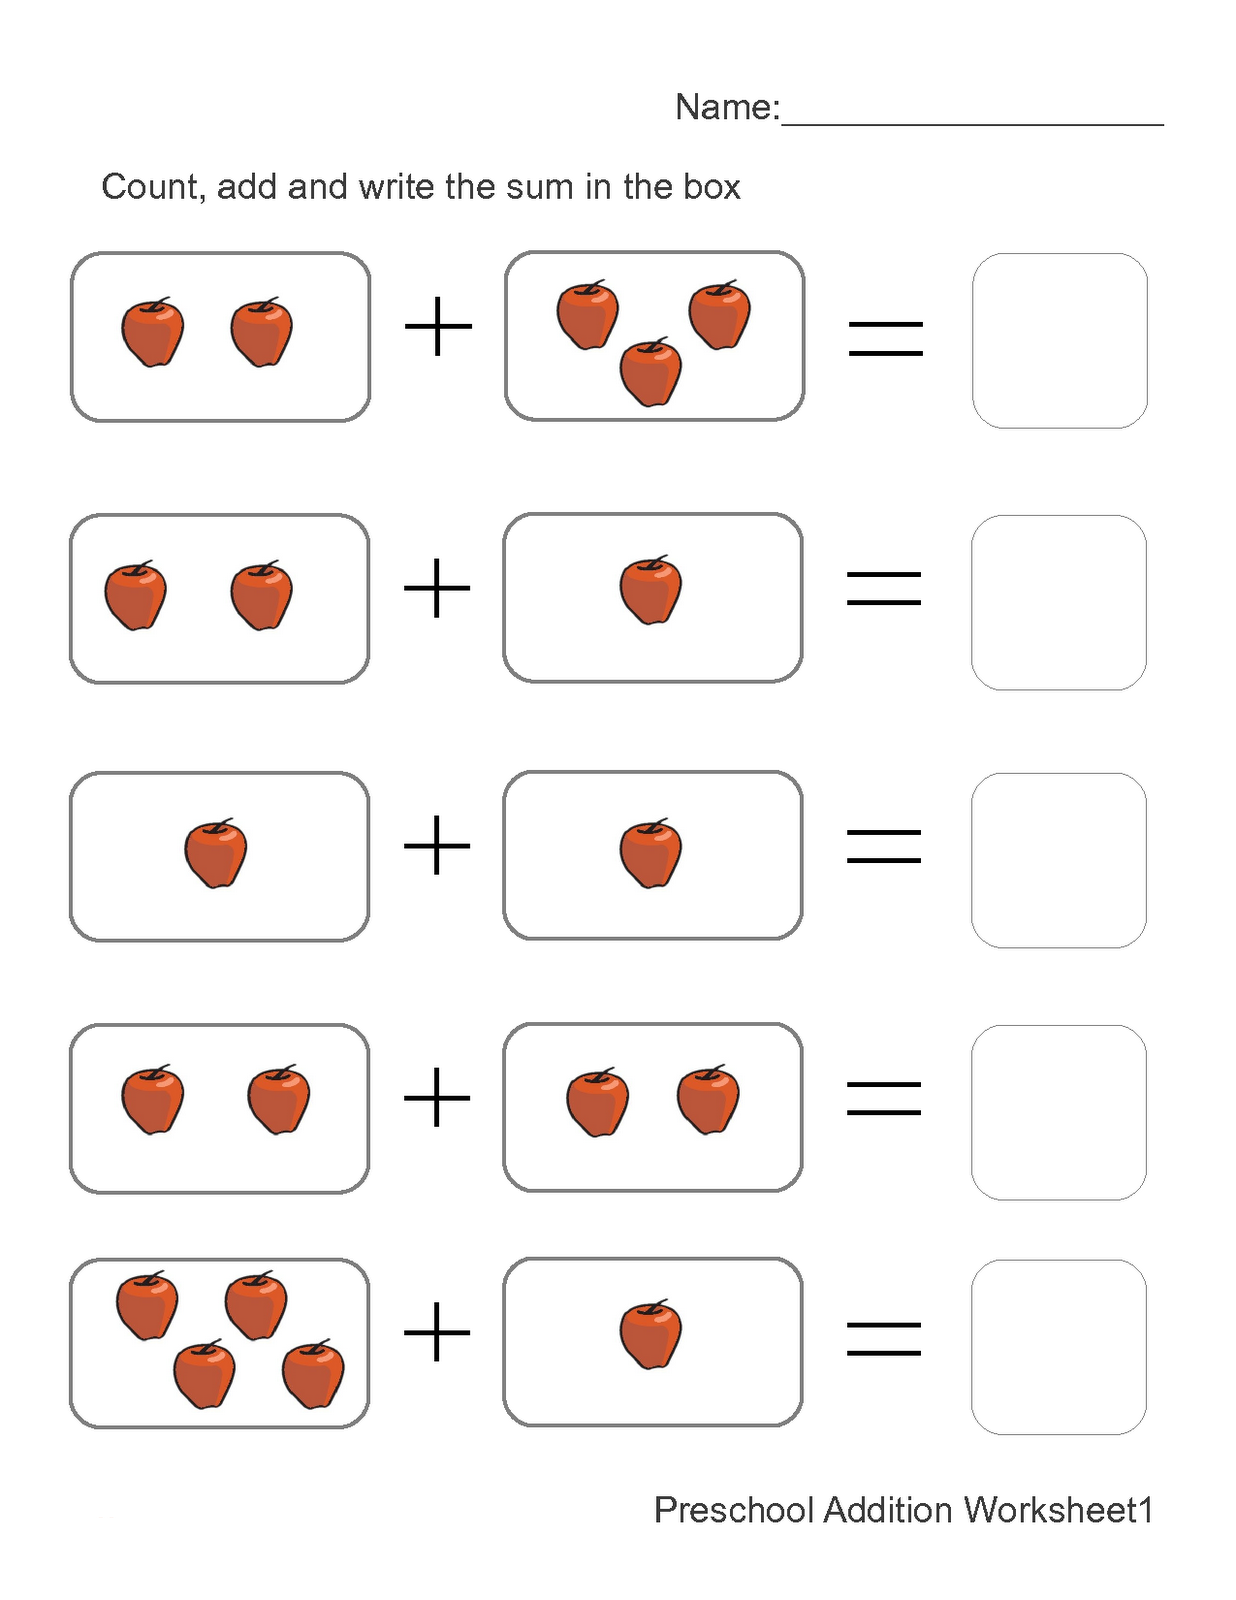 worksheet Free Printable Addition Worksheets For Kindergarten 17 images about mathematics on pinterest fact families math and count